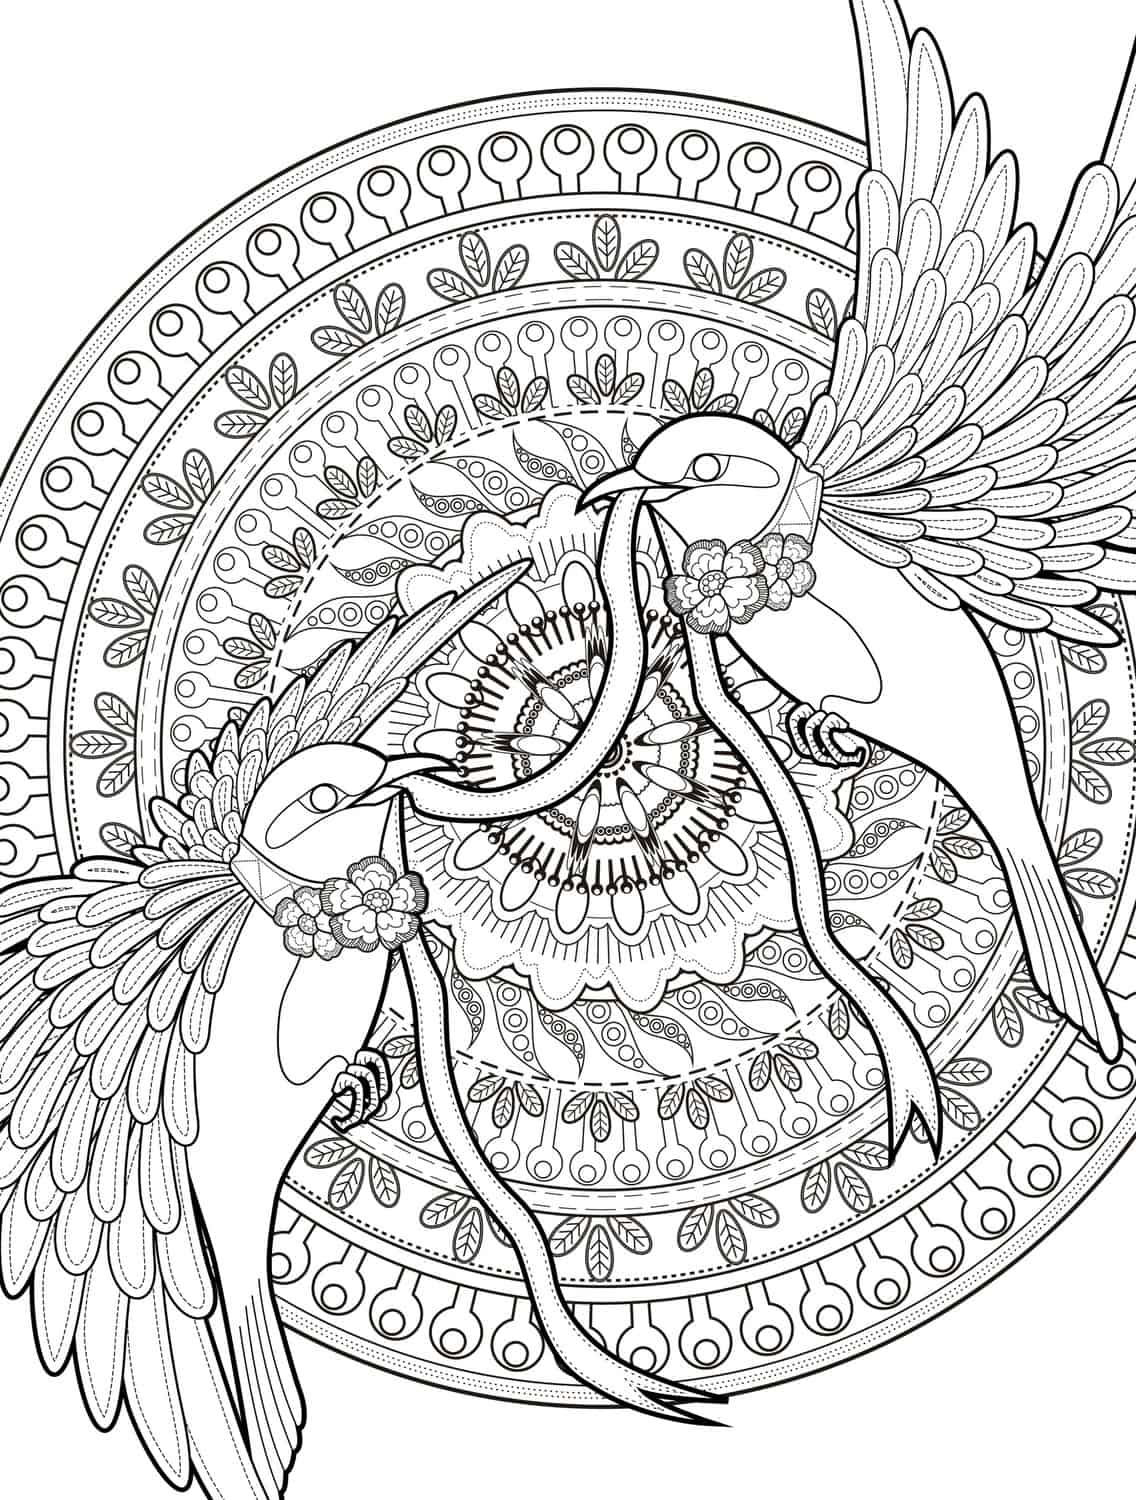 coloring books coloring pages for adults and coloring pages